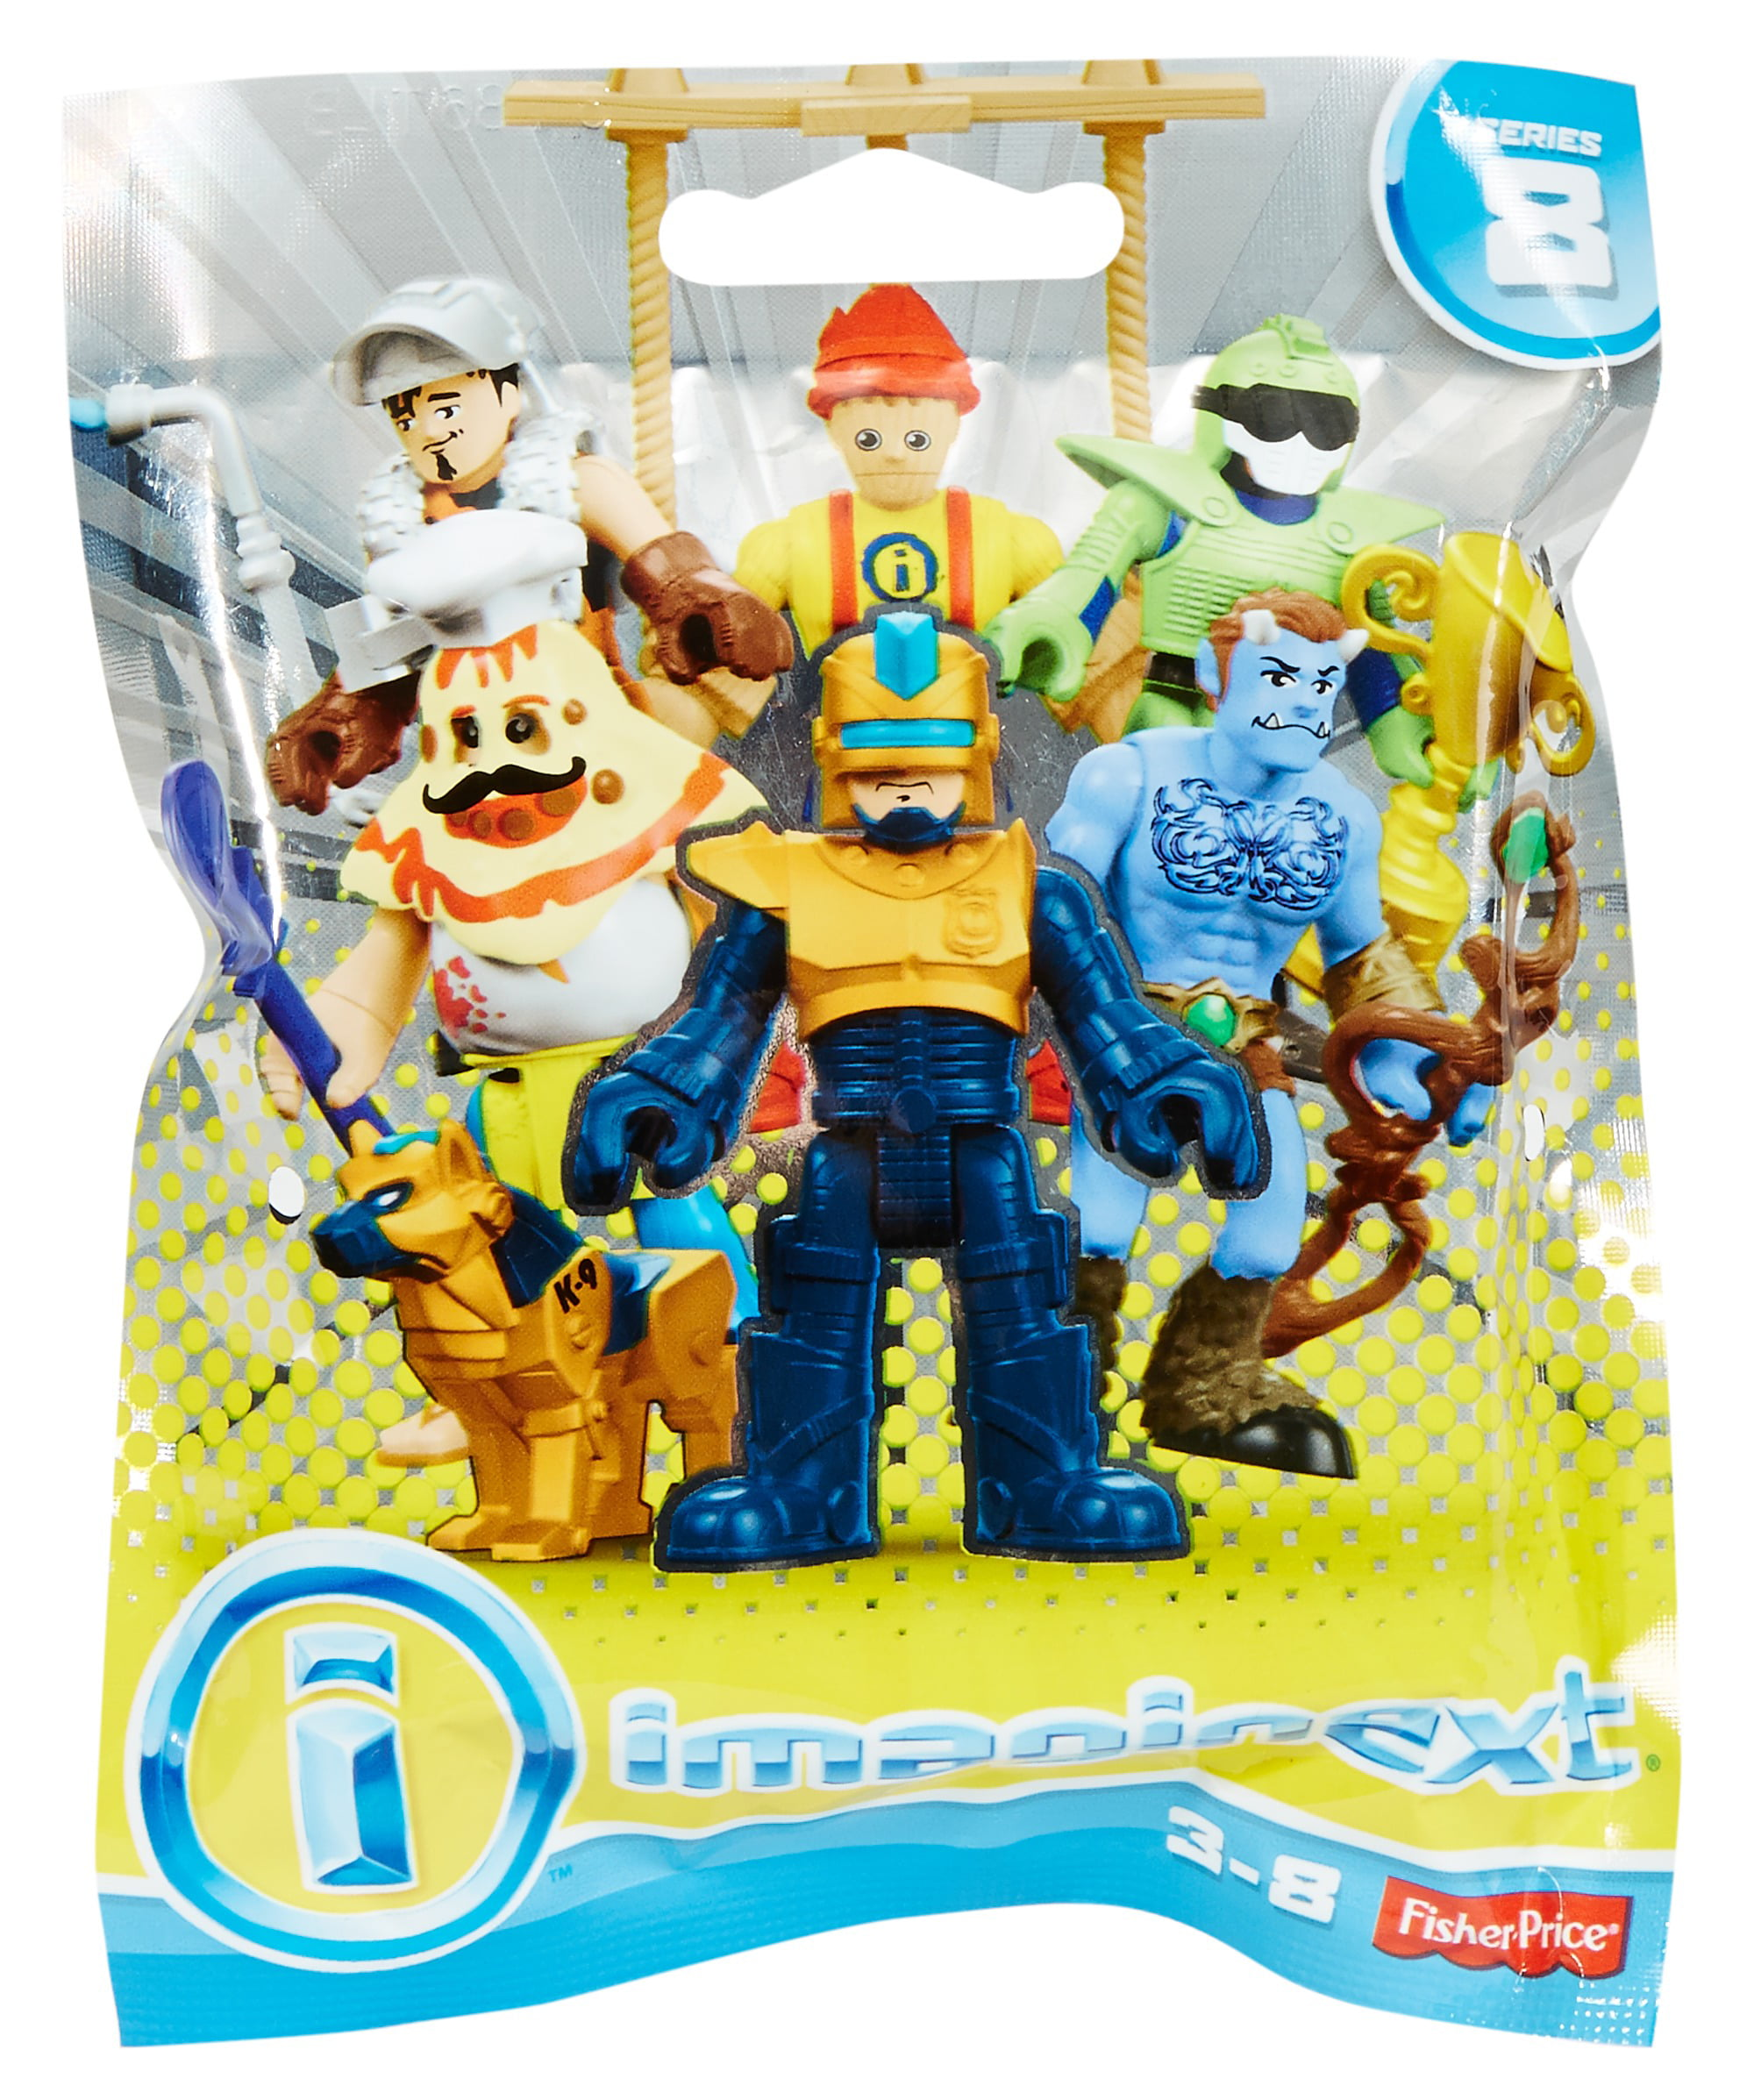 Imaginext Birthday Clown Series 4 Blind Bag Fisher-Price action figure toy